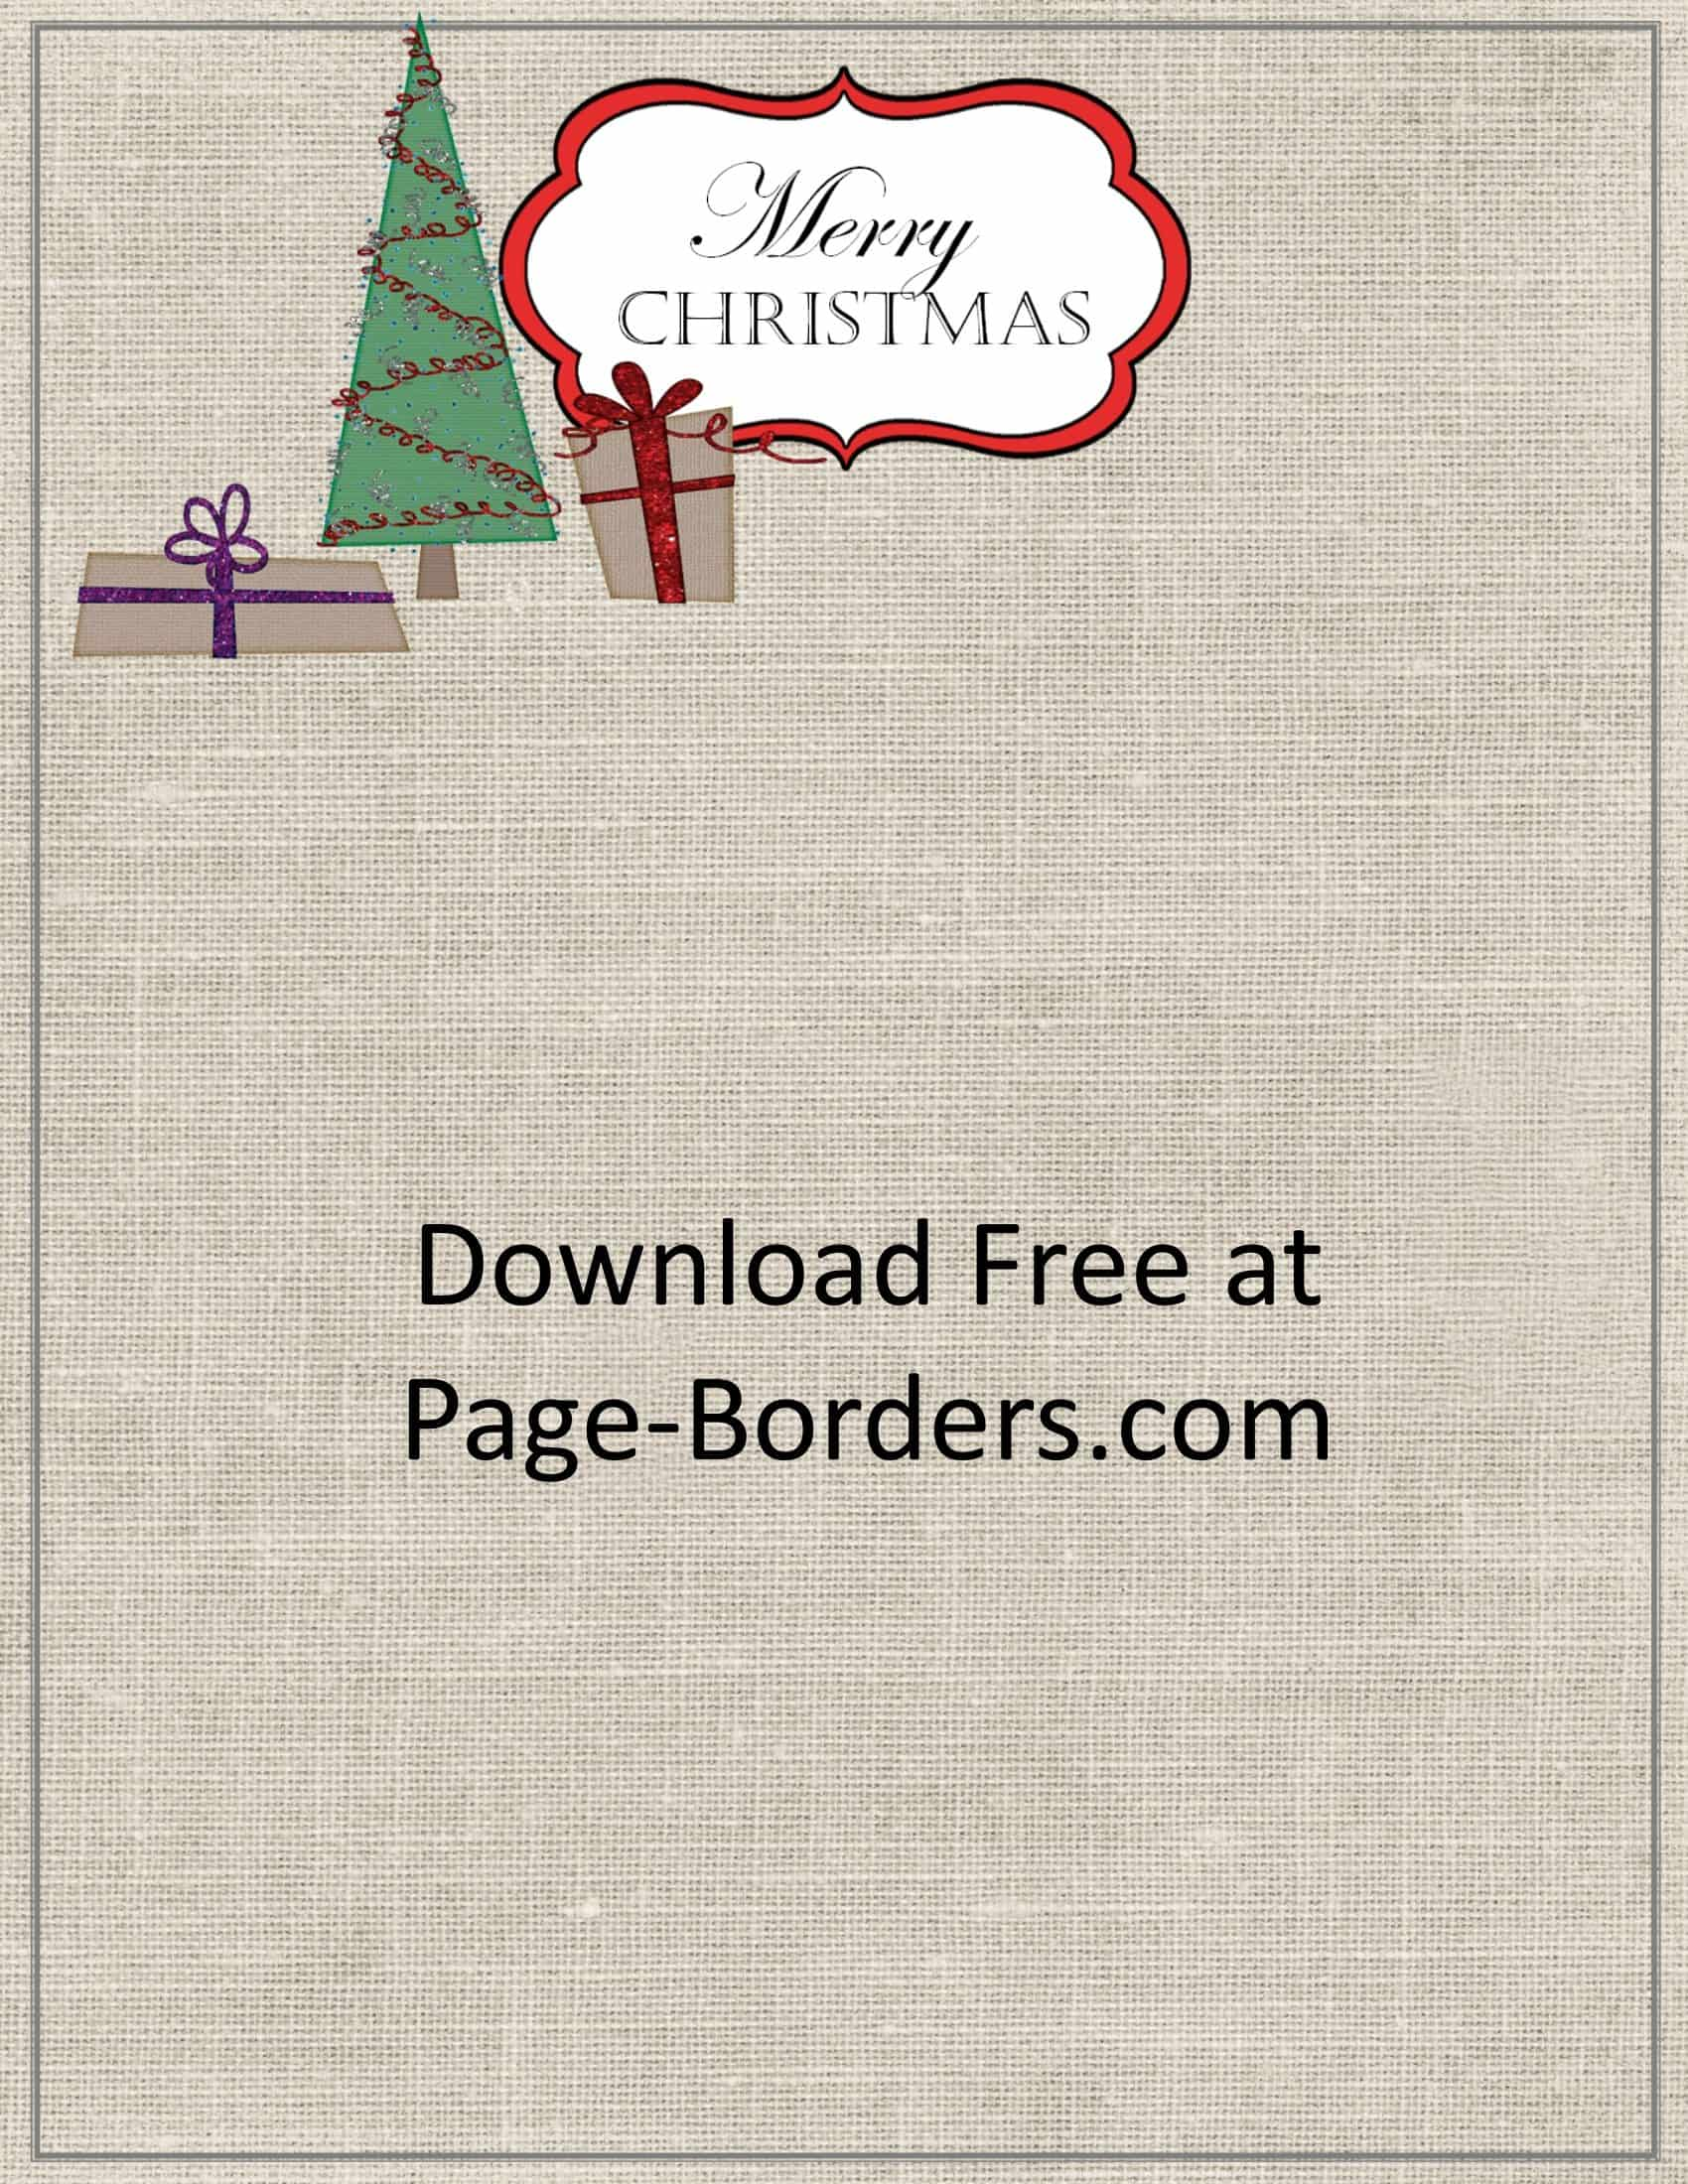 Free Printable Christmas Stationery Borders.Free Christmas Border Customize Online Personal